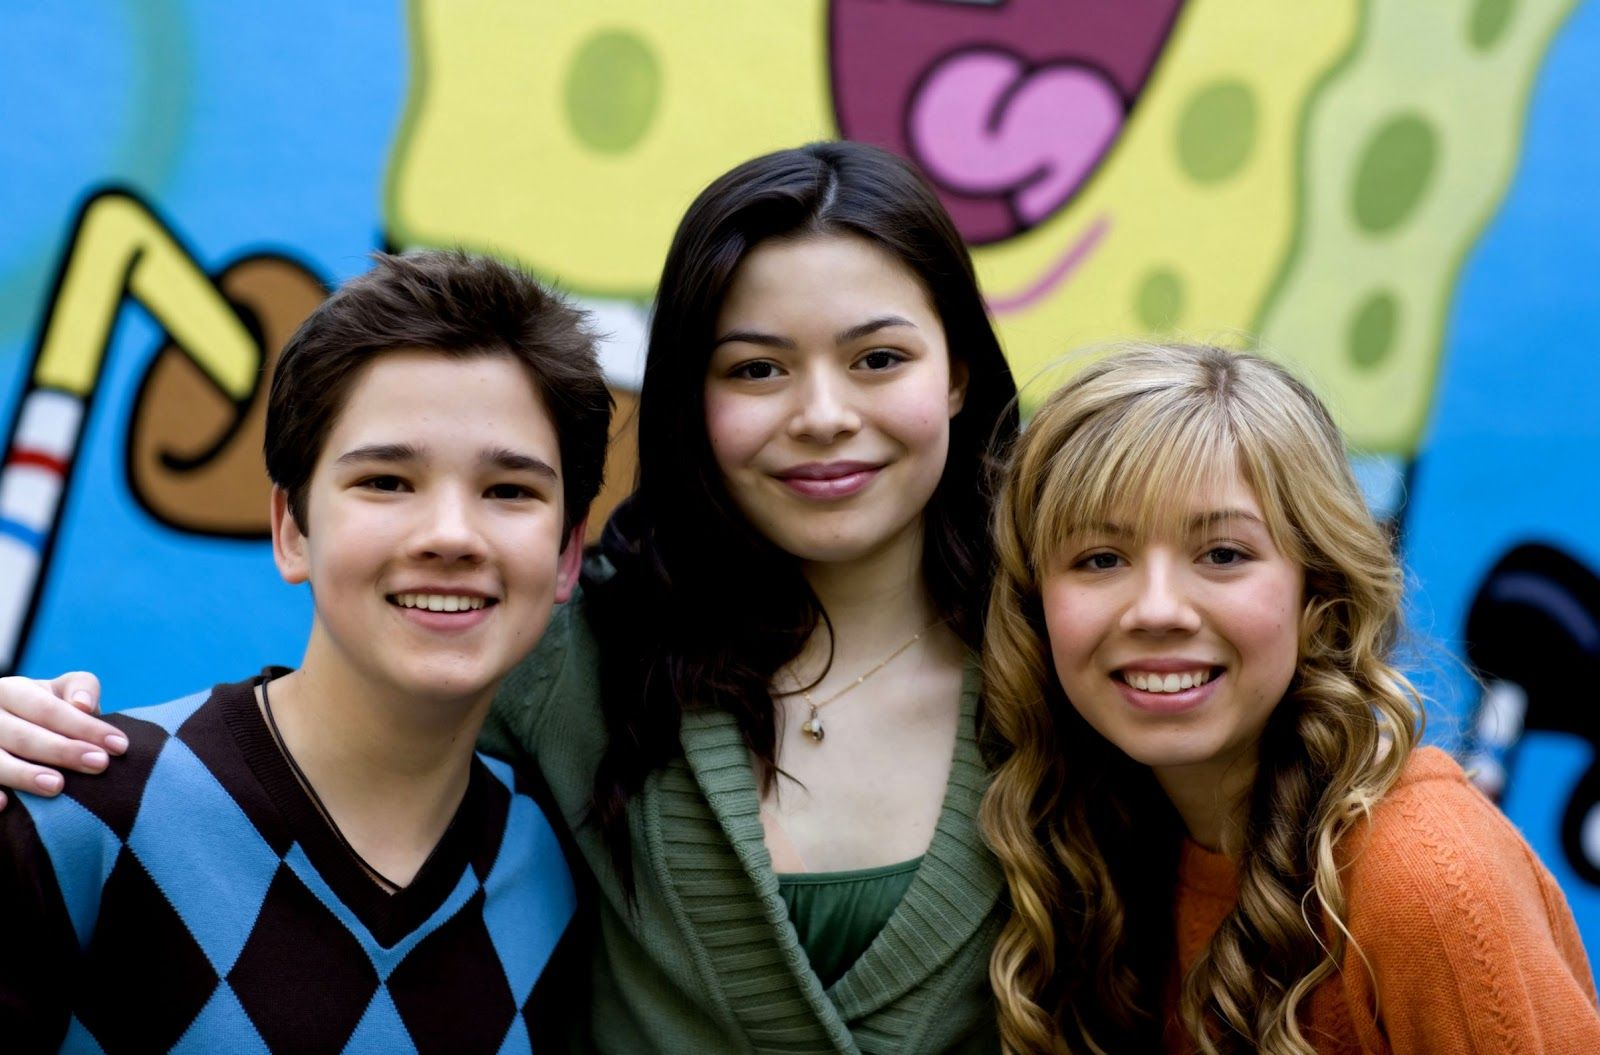 1600x1055 Icarly Wallpaper Hd | Smart Wallpapers